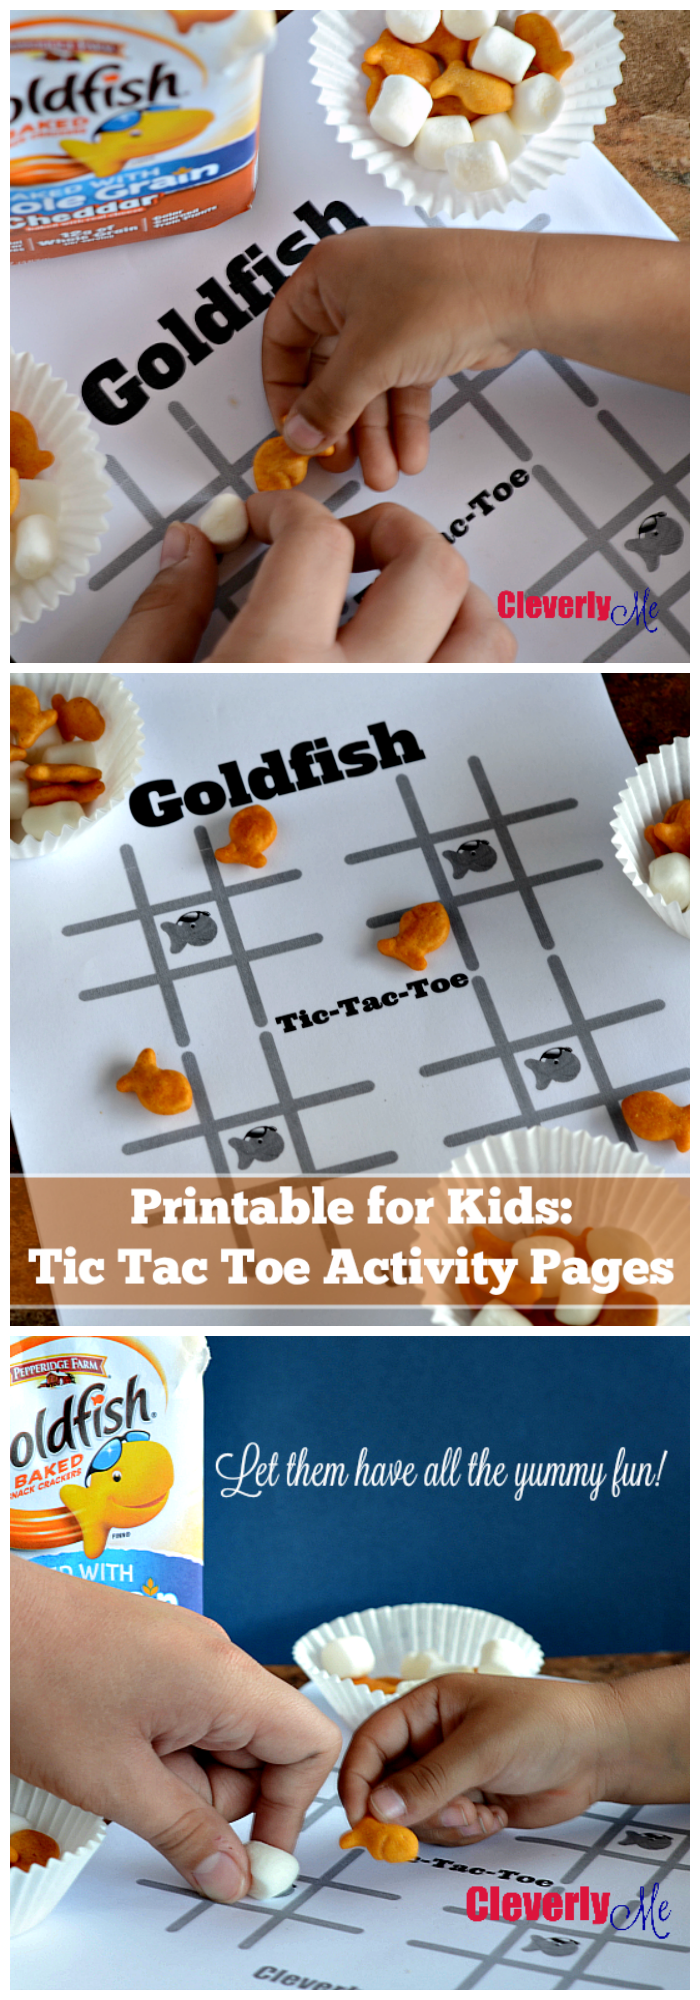 Tic tac toe is a paper-and-pencil game for two players, get your kids to have fun with this Printable for Kids: Tic Tac Toe Activity Pages with a delicious twist. Print it at CleverlyMe.com